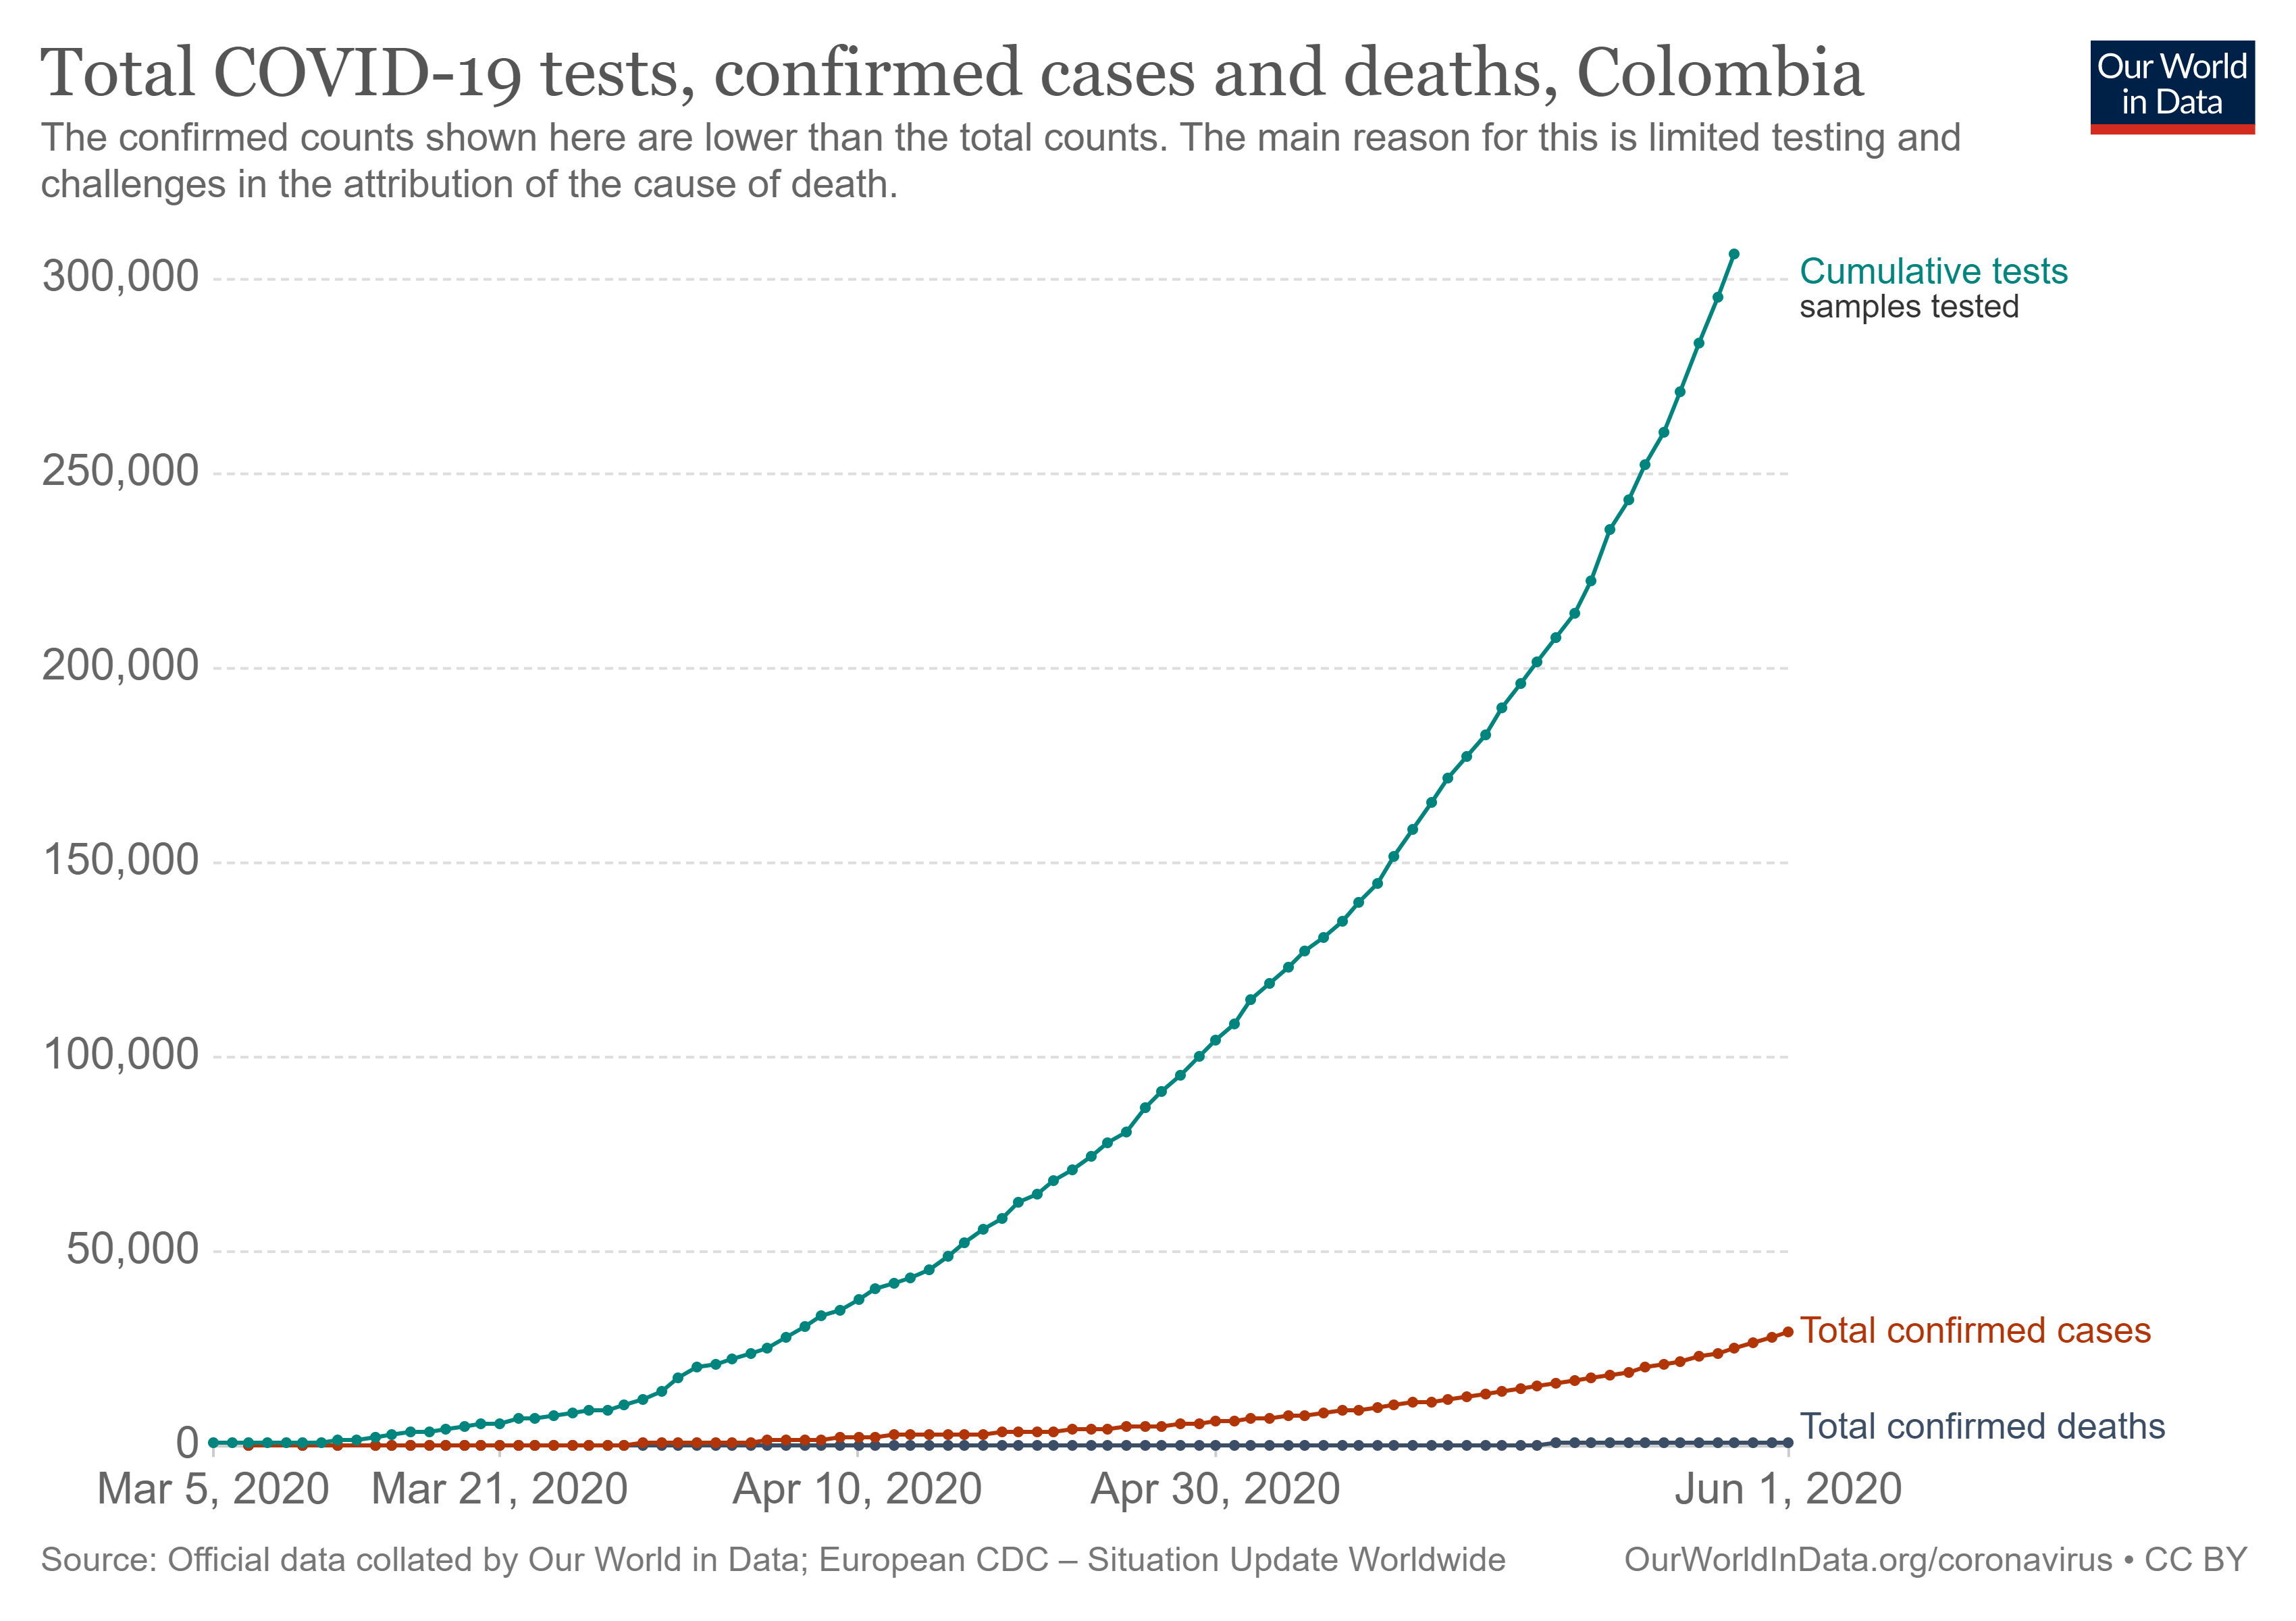 Figure 9: Colombia tests, cases and deaths (linear scale)